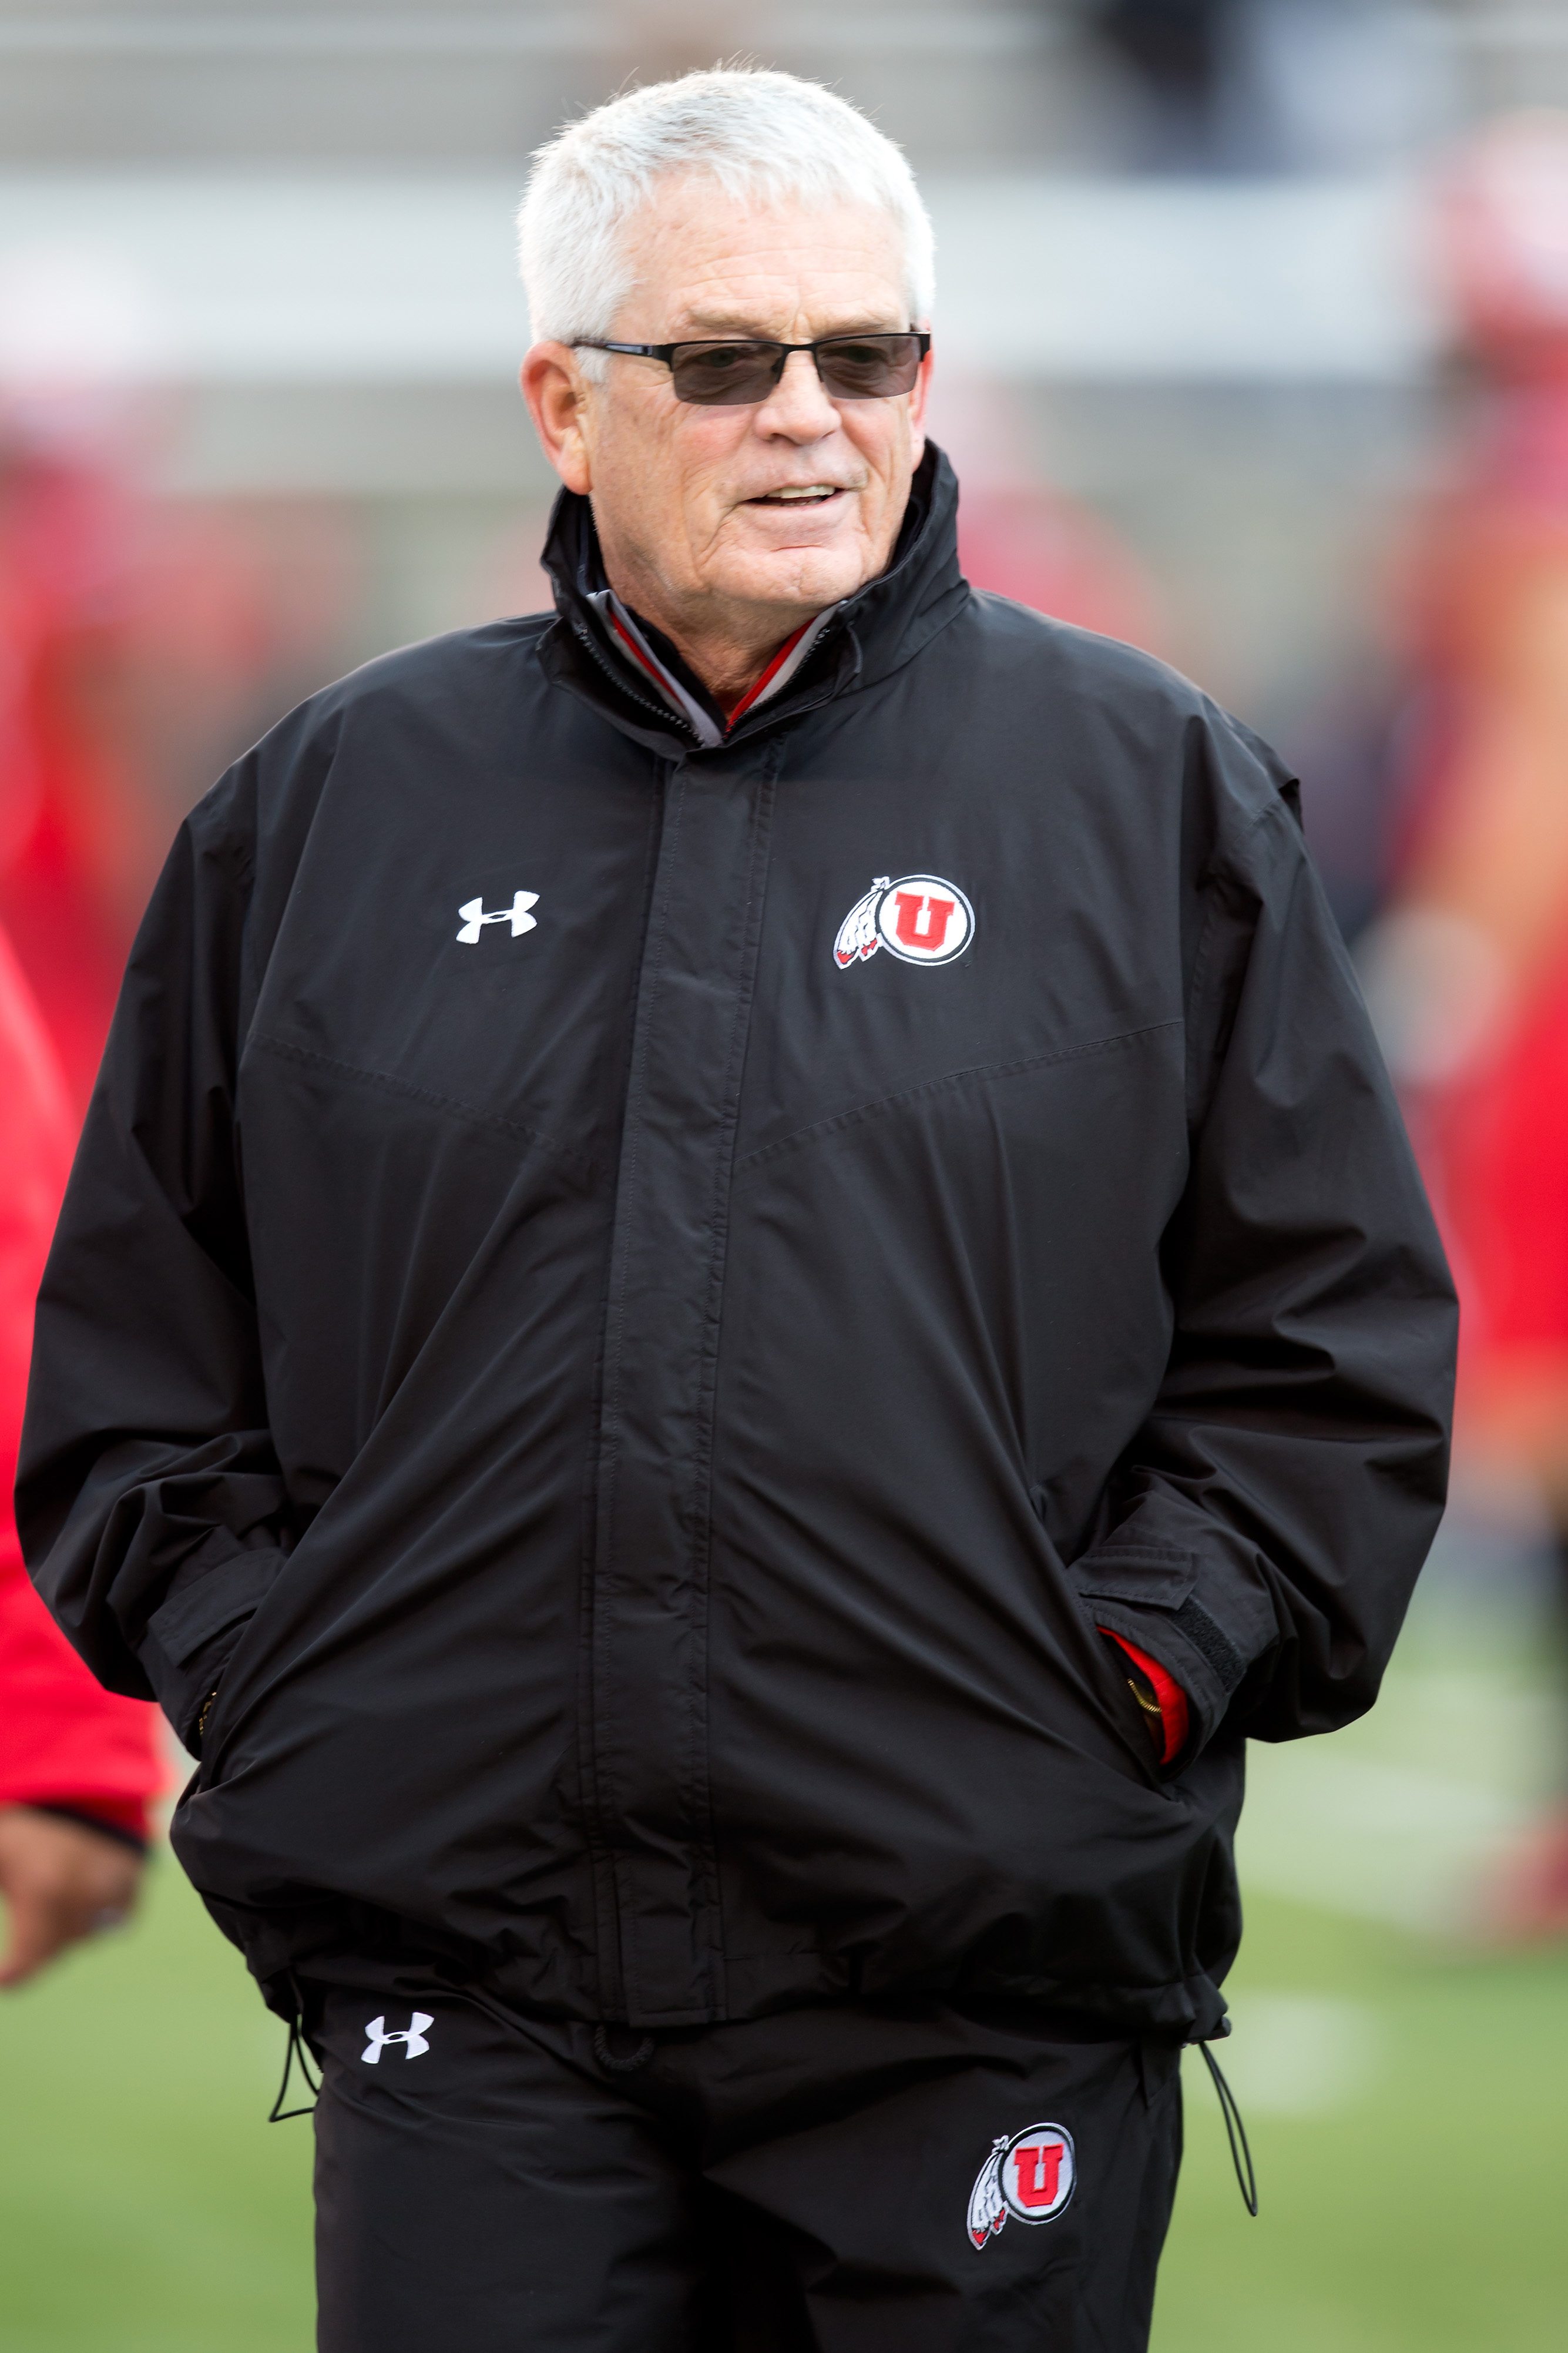 Utah running backs coach (and former Miami and Arizona State head coach) Dennis Erickson was today promoted to assistant head coach.